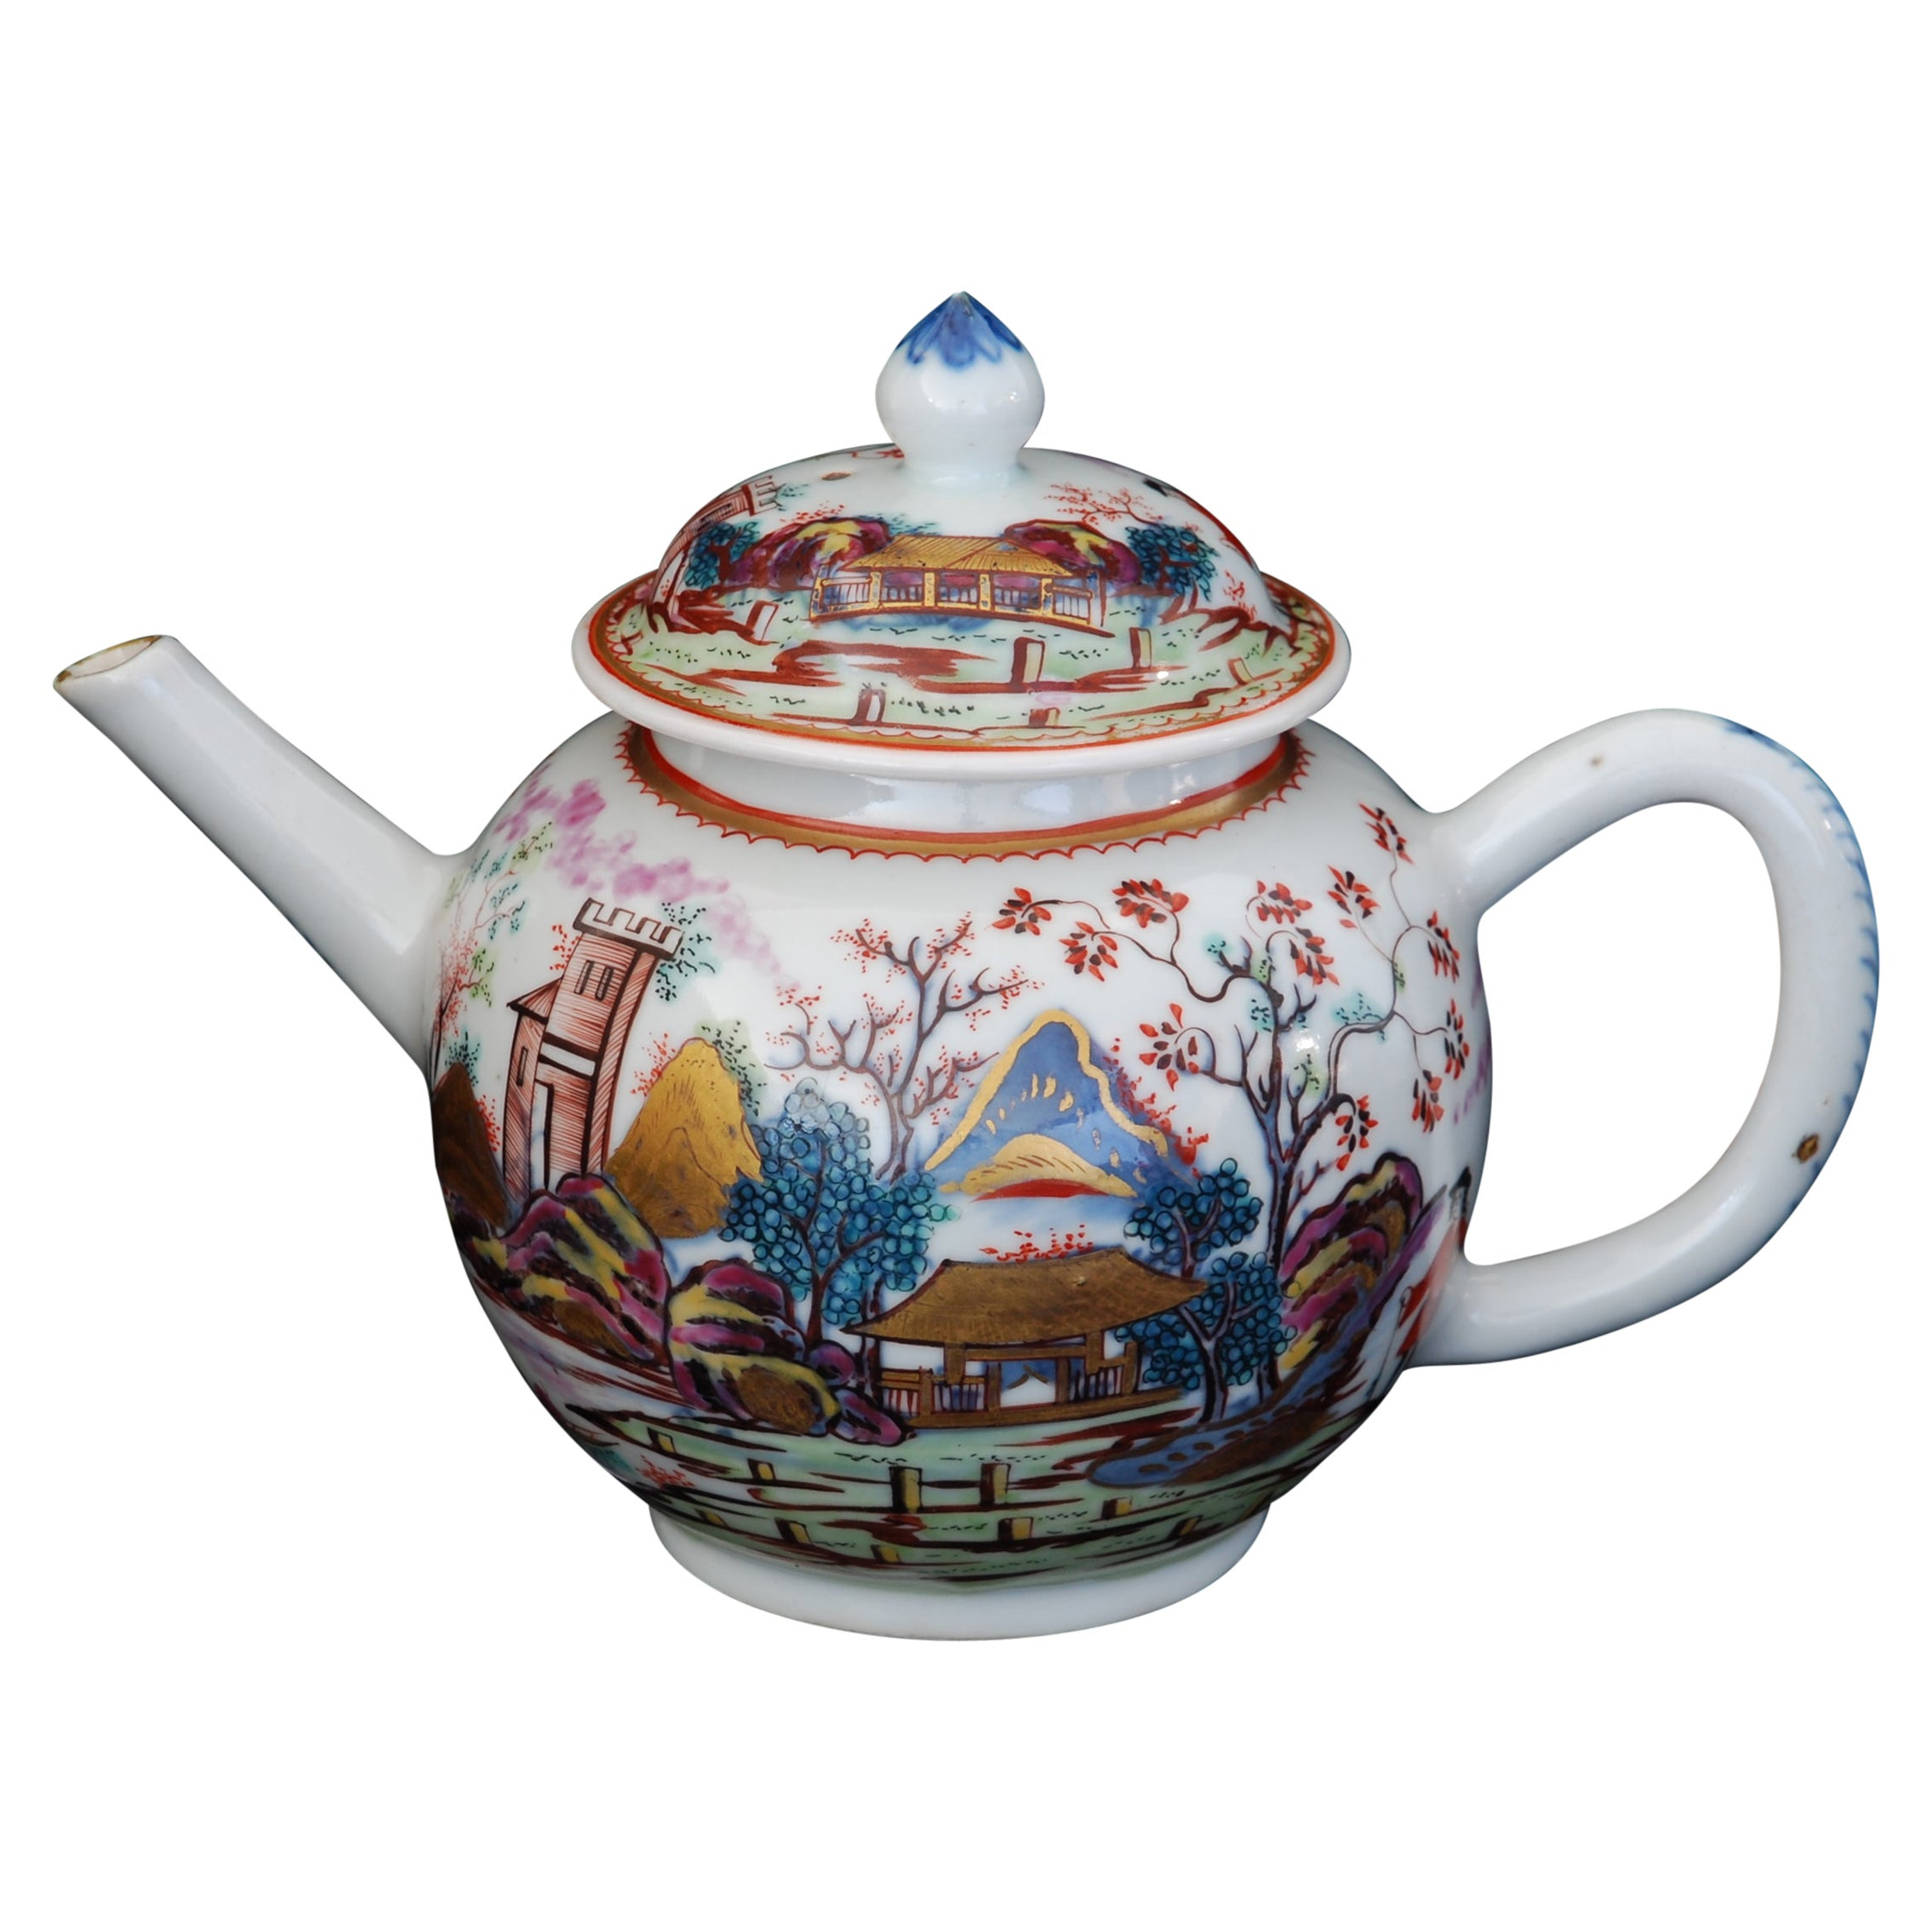 Teapot, Red Coat Pattern, China, circa 1740, Decorated in London by Giles